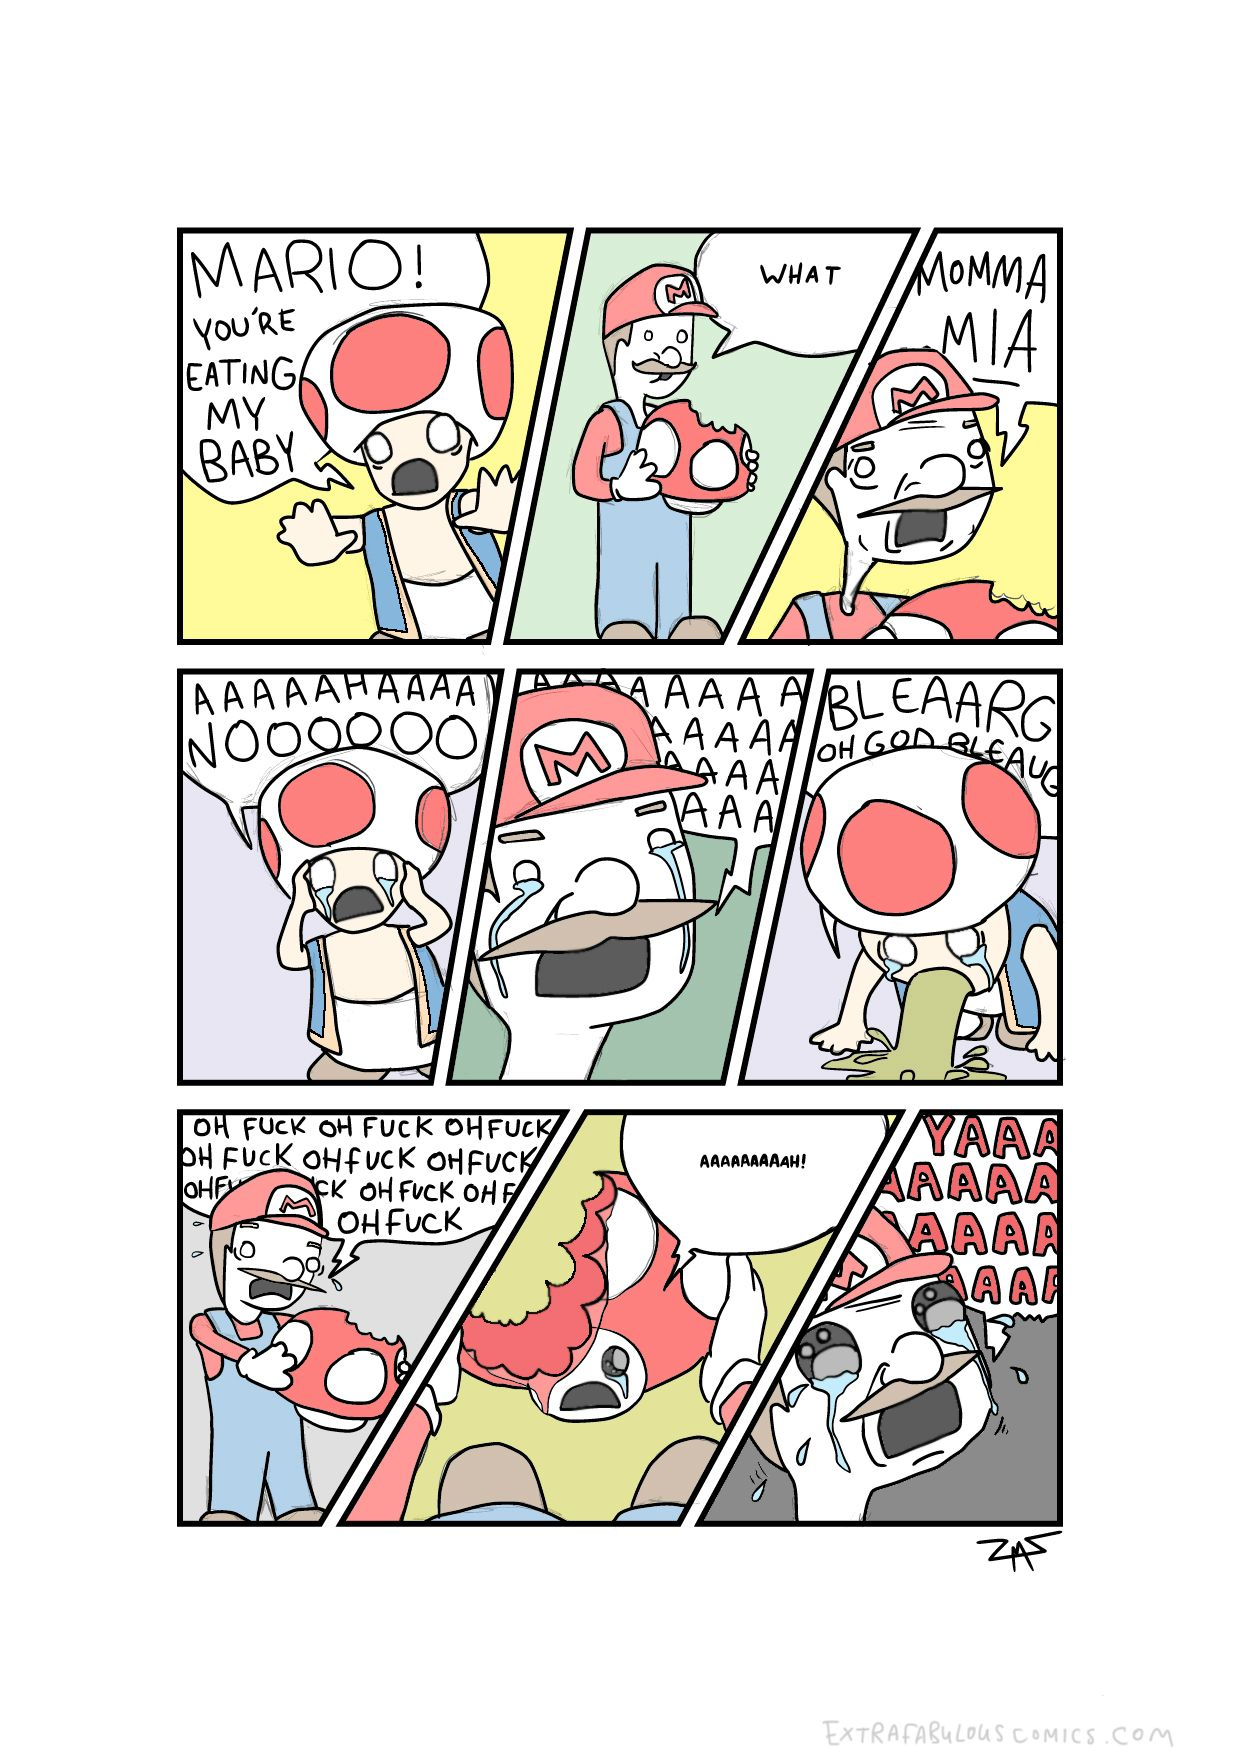 Mario! You're eating my baby!